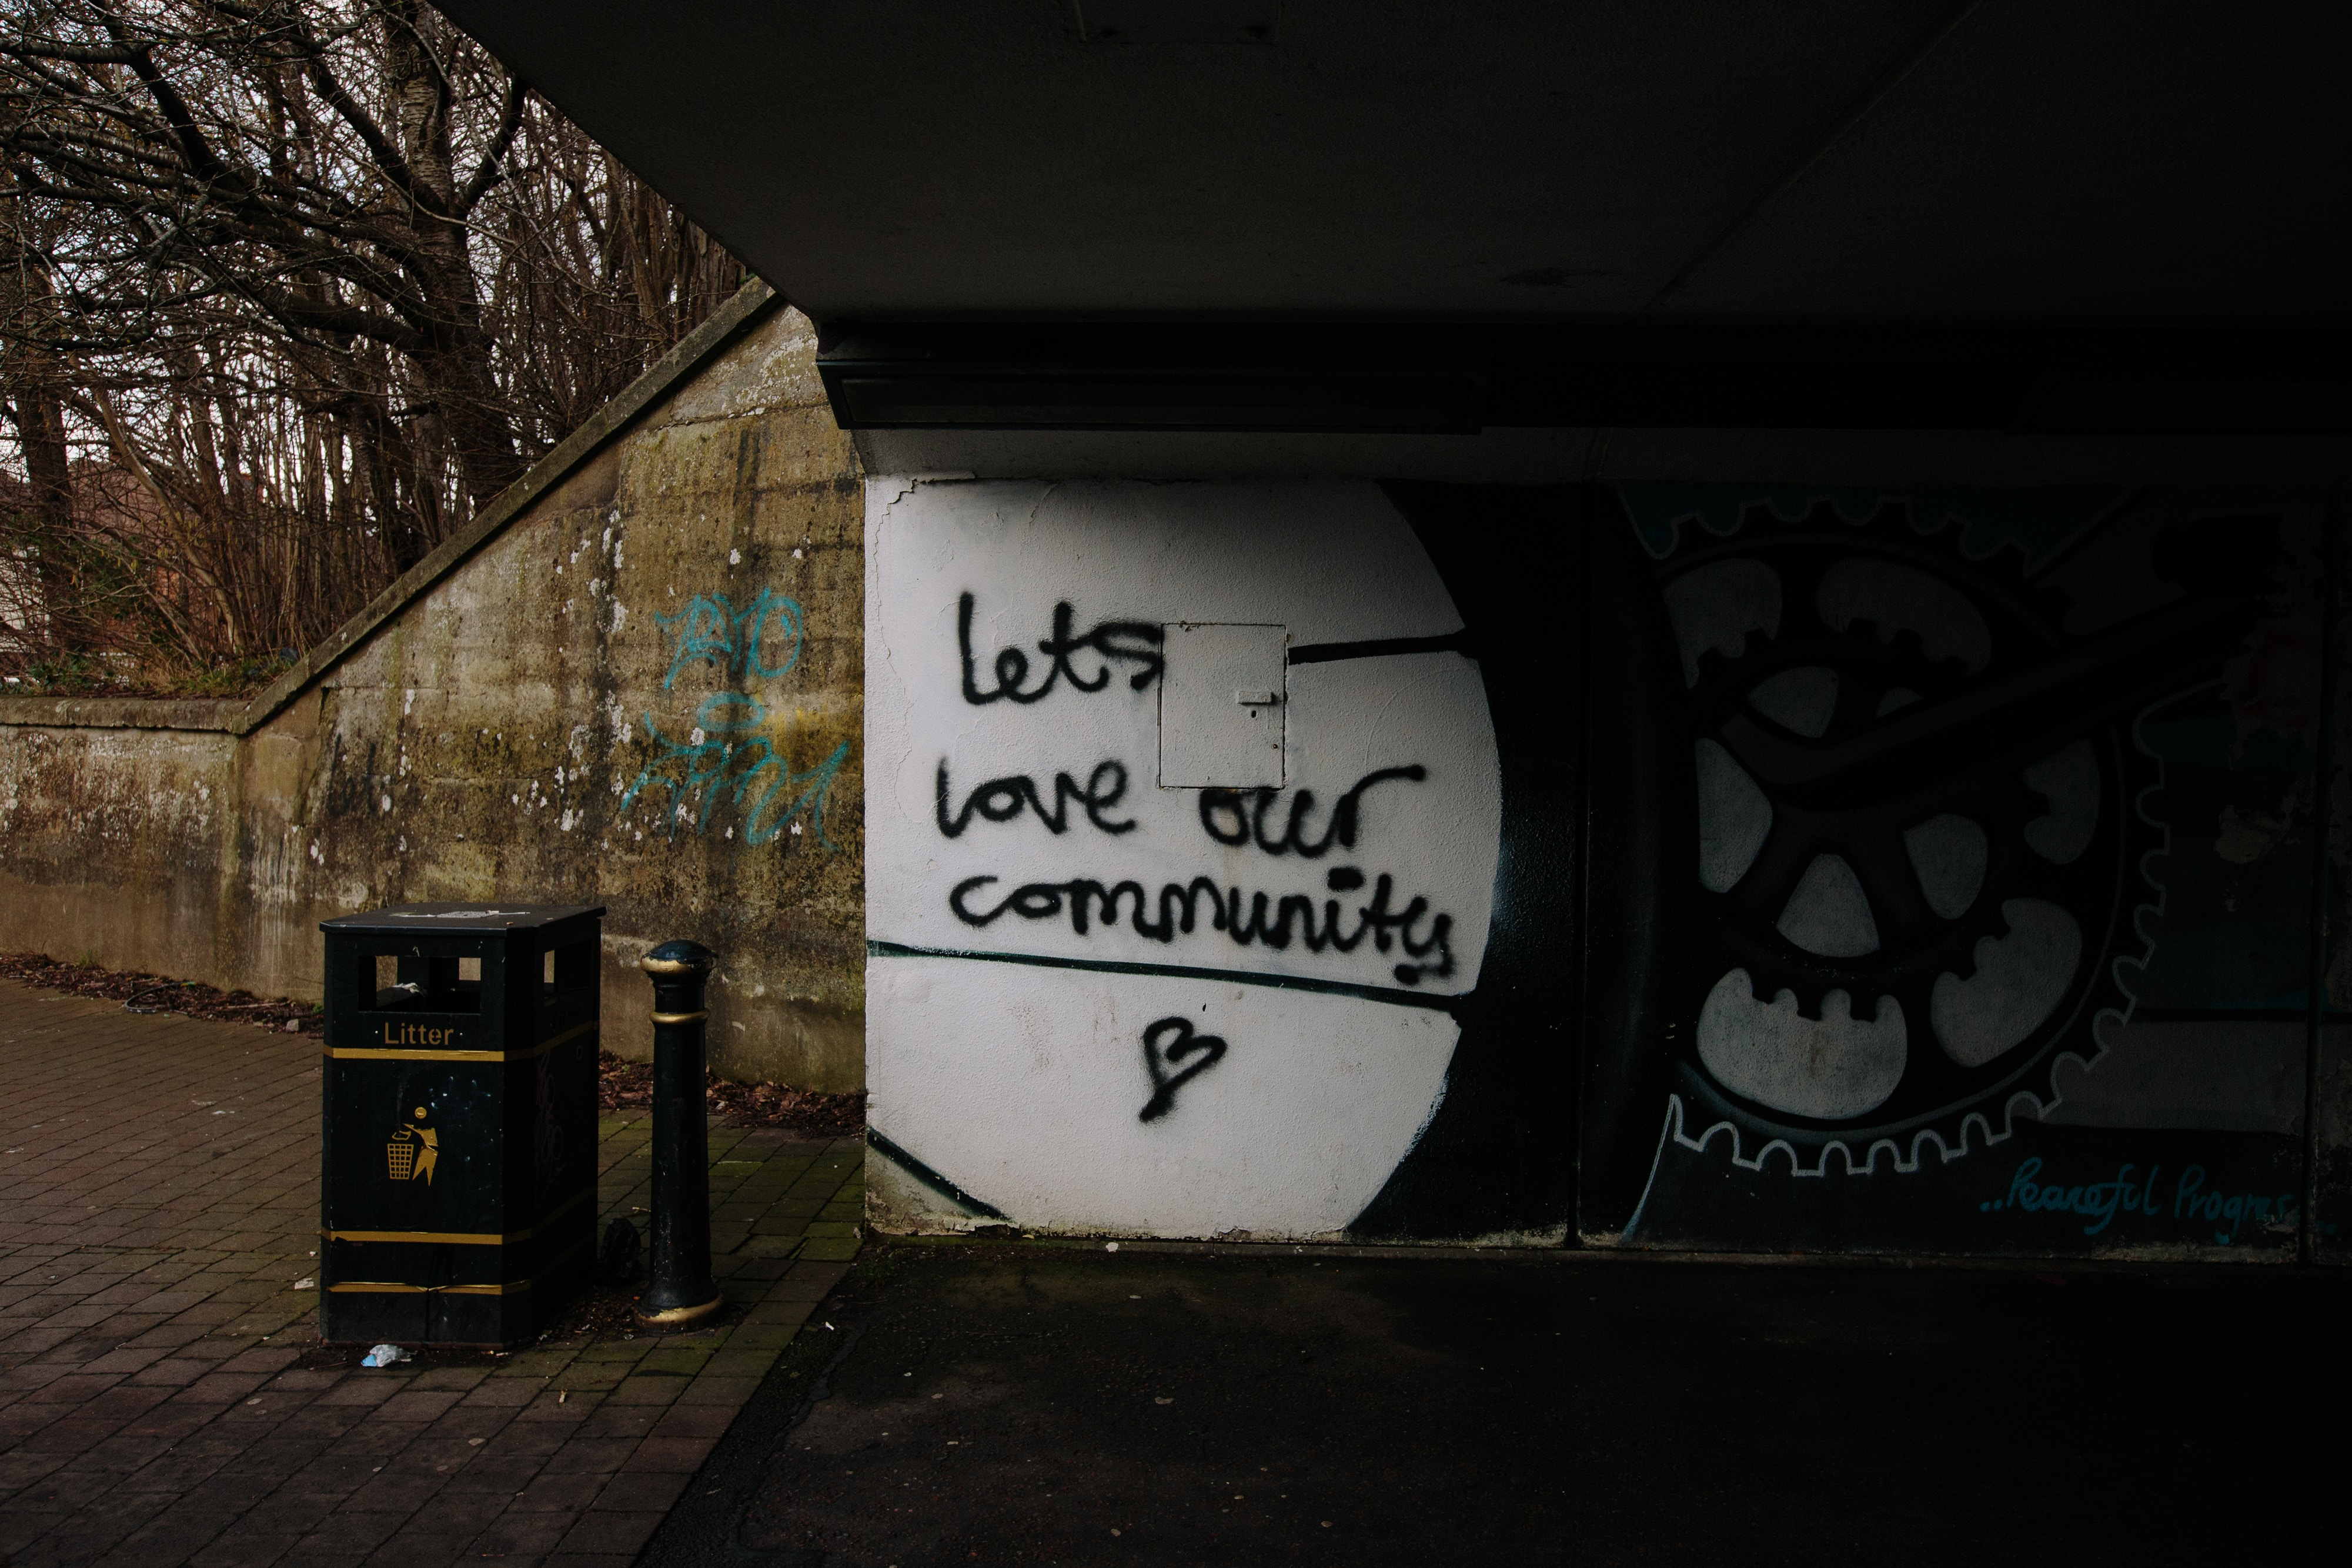 image is of graffiti under a bridge that says lets love our community